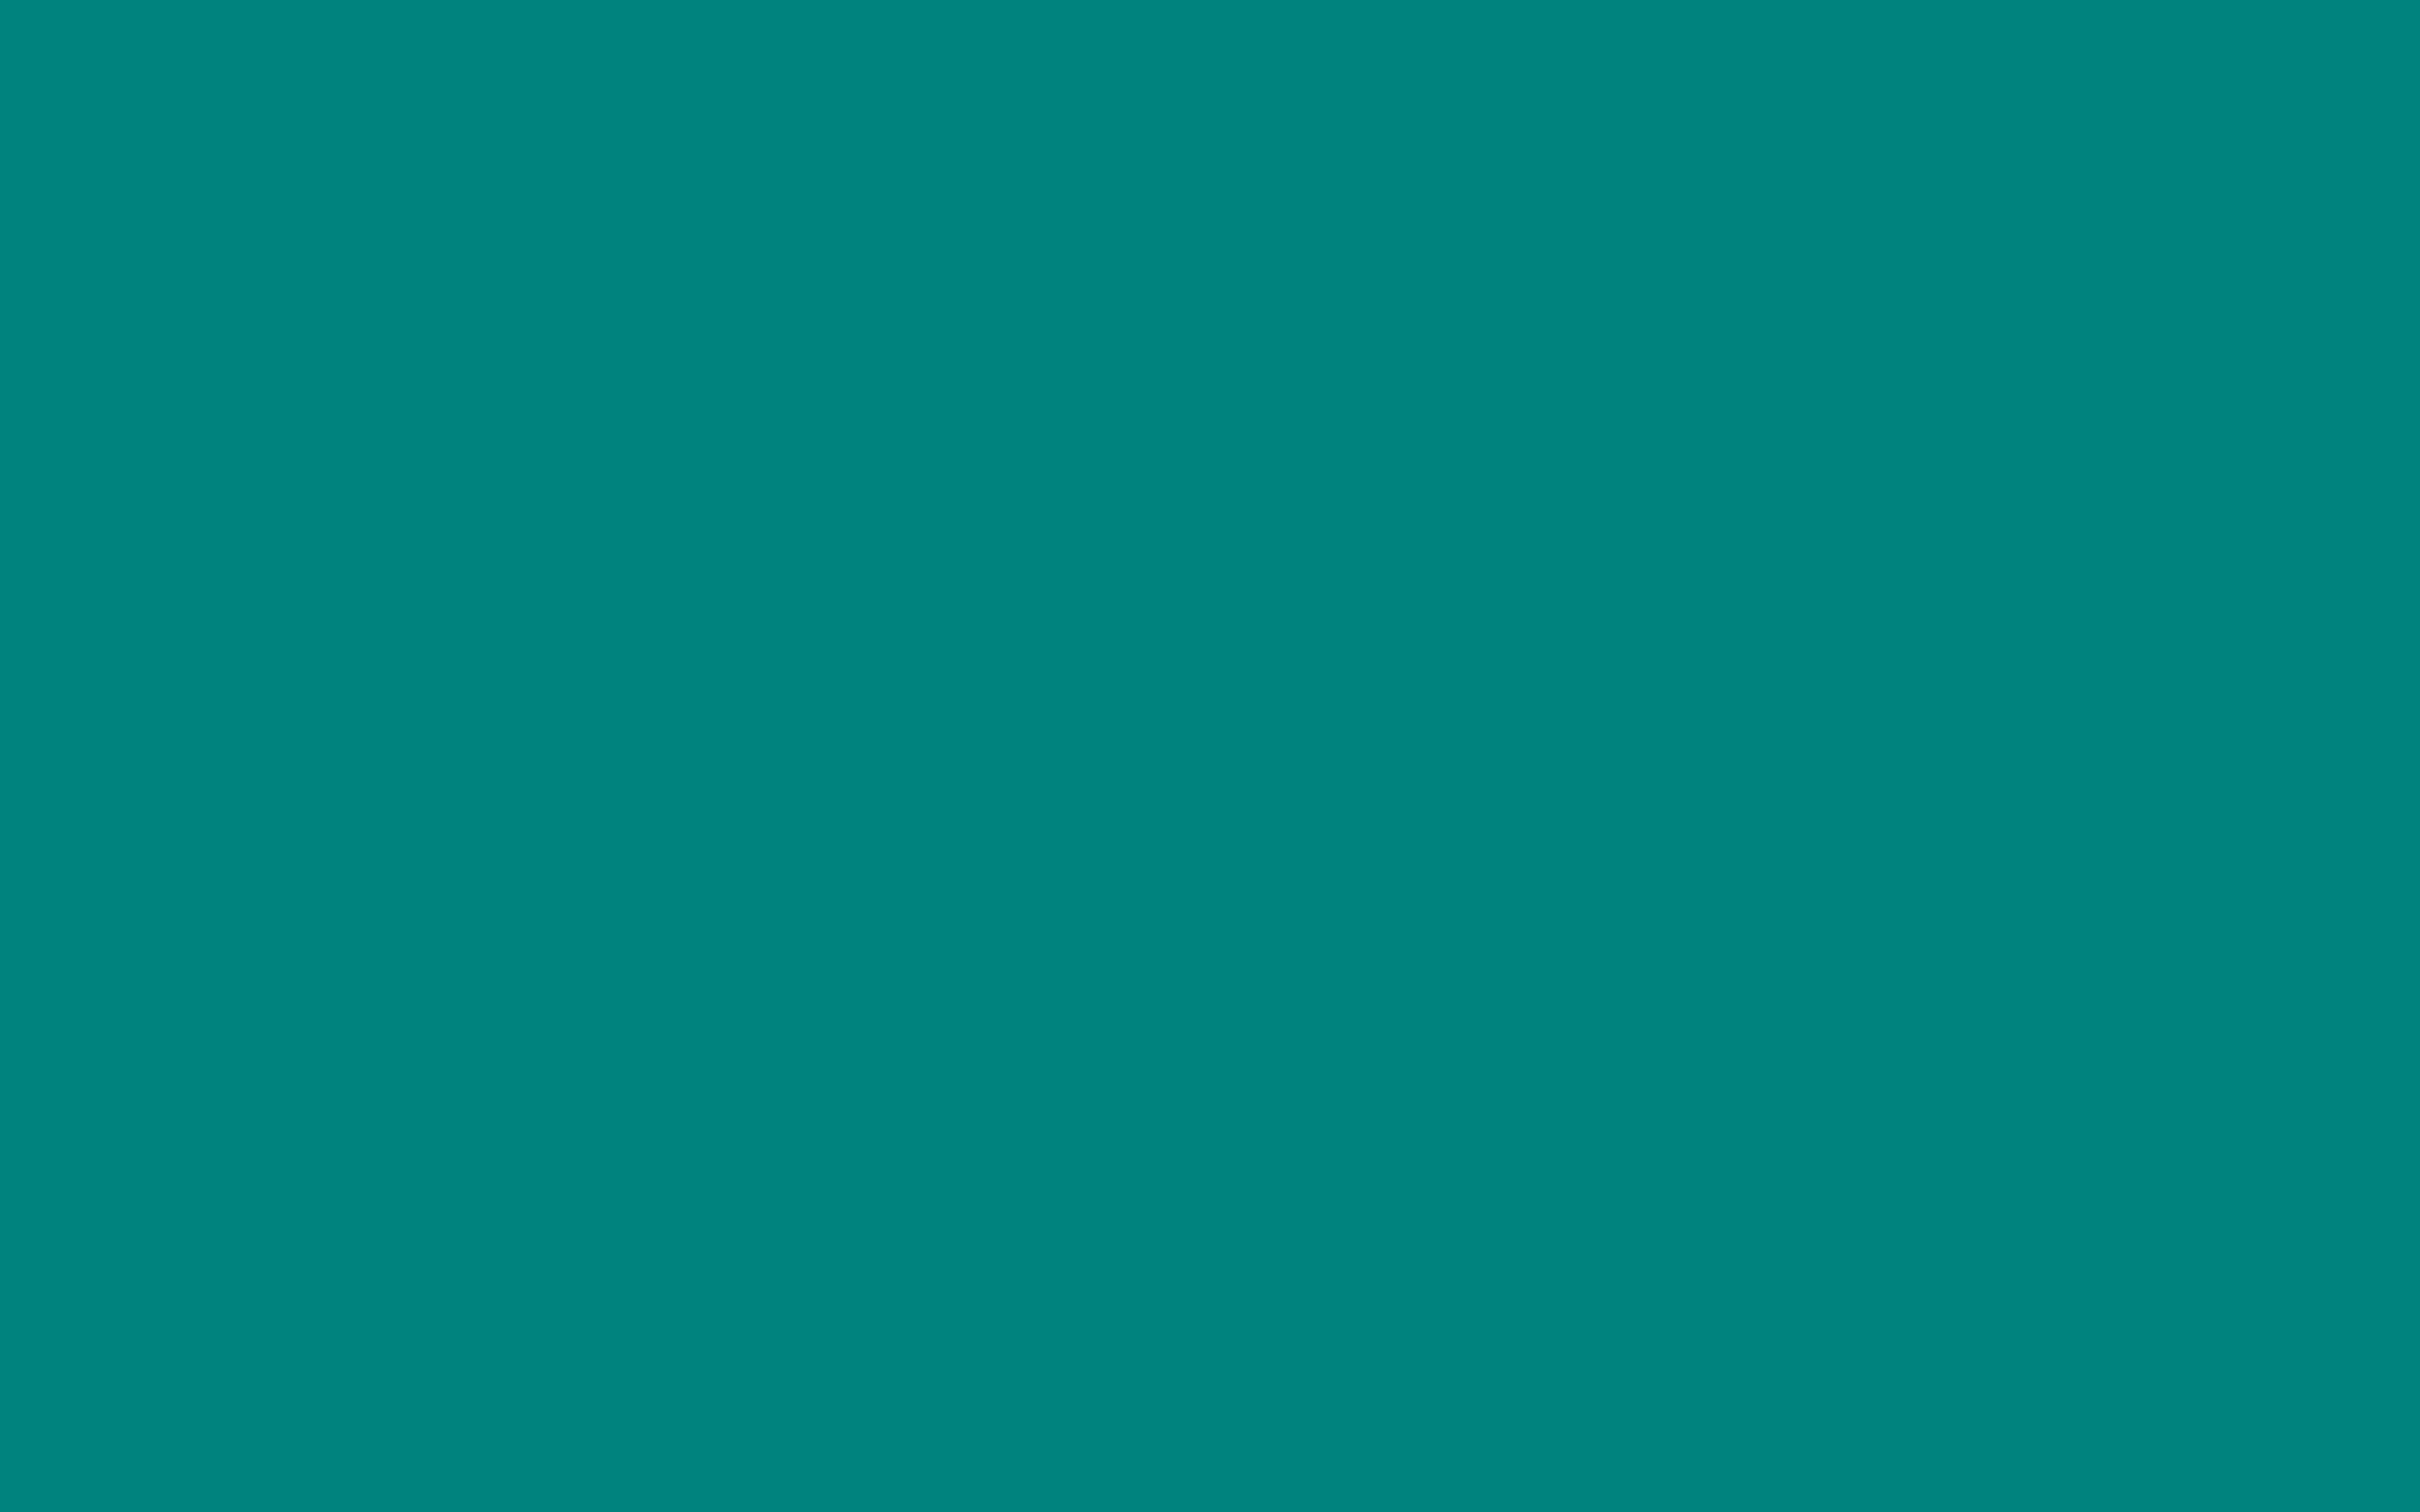 2880x1800 Teal Green Solid Color Background